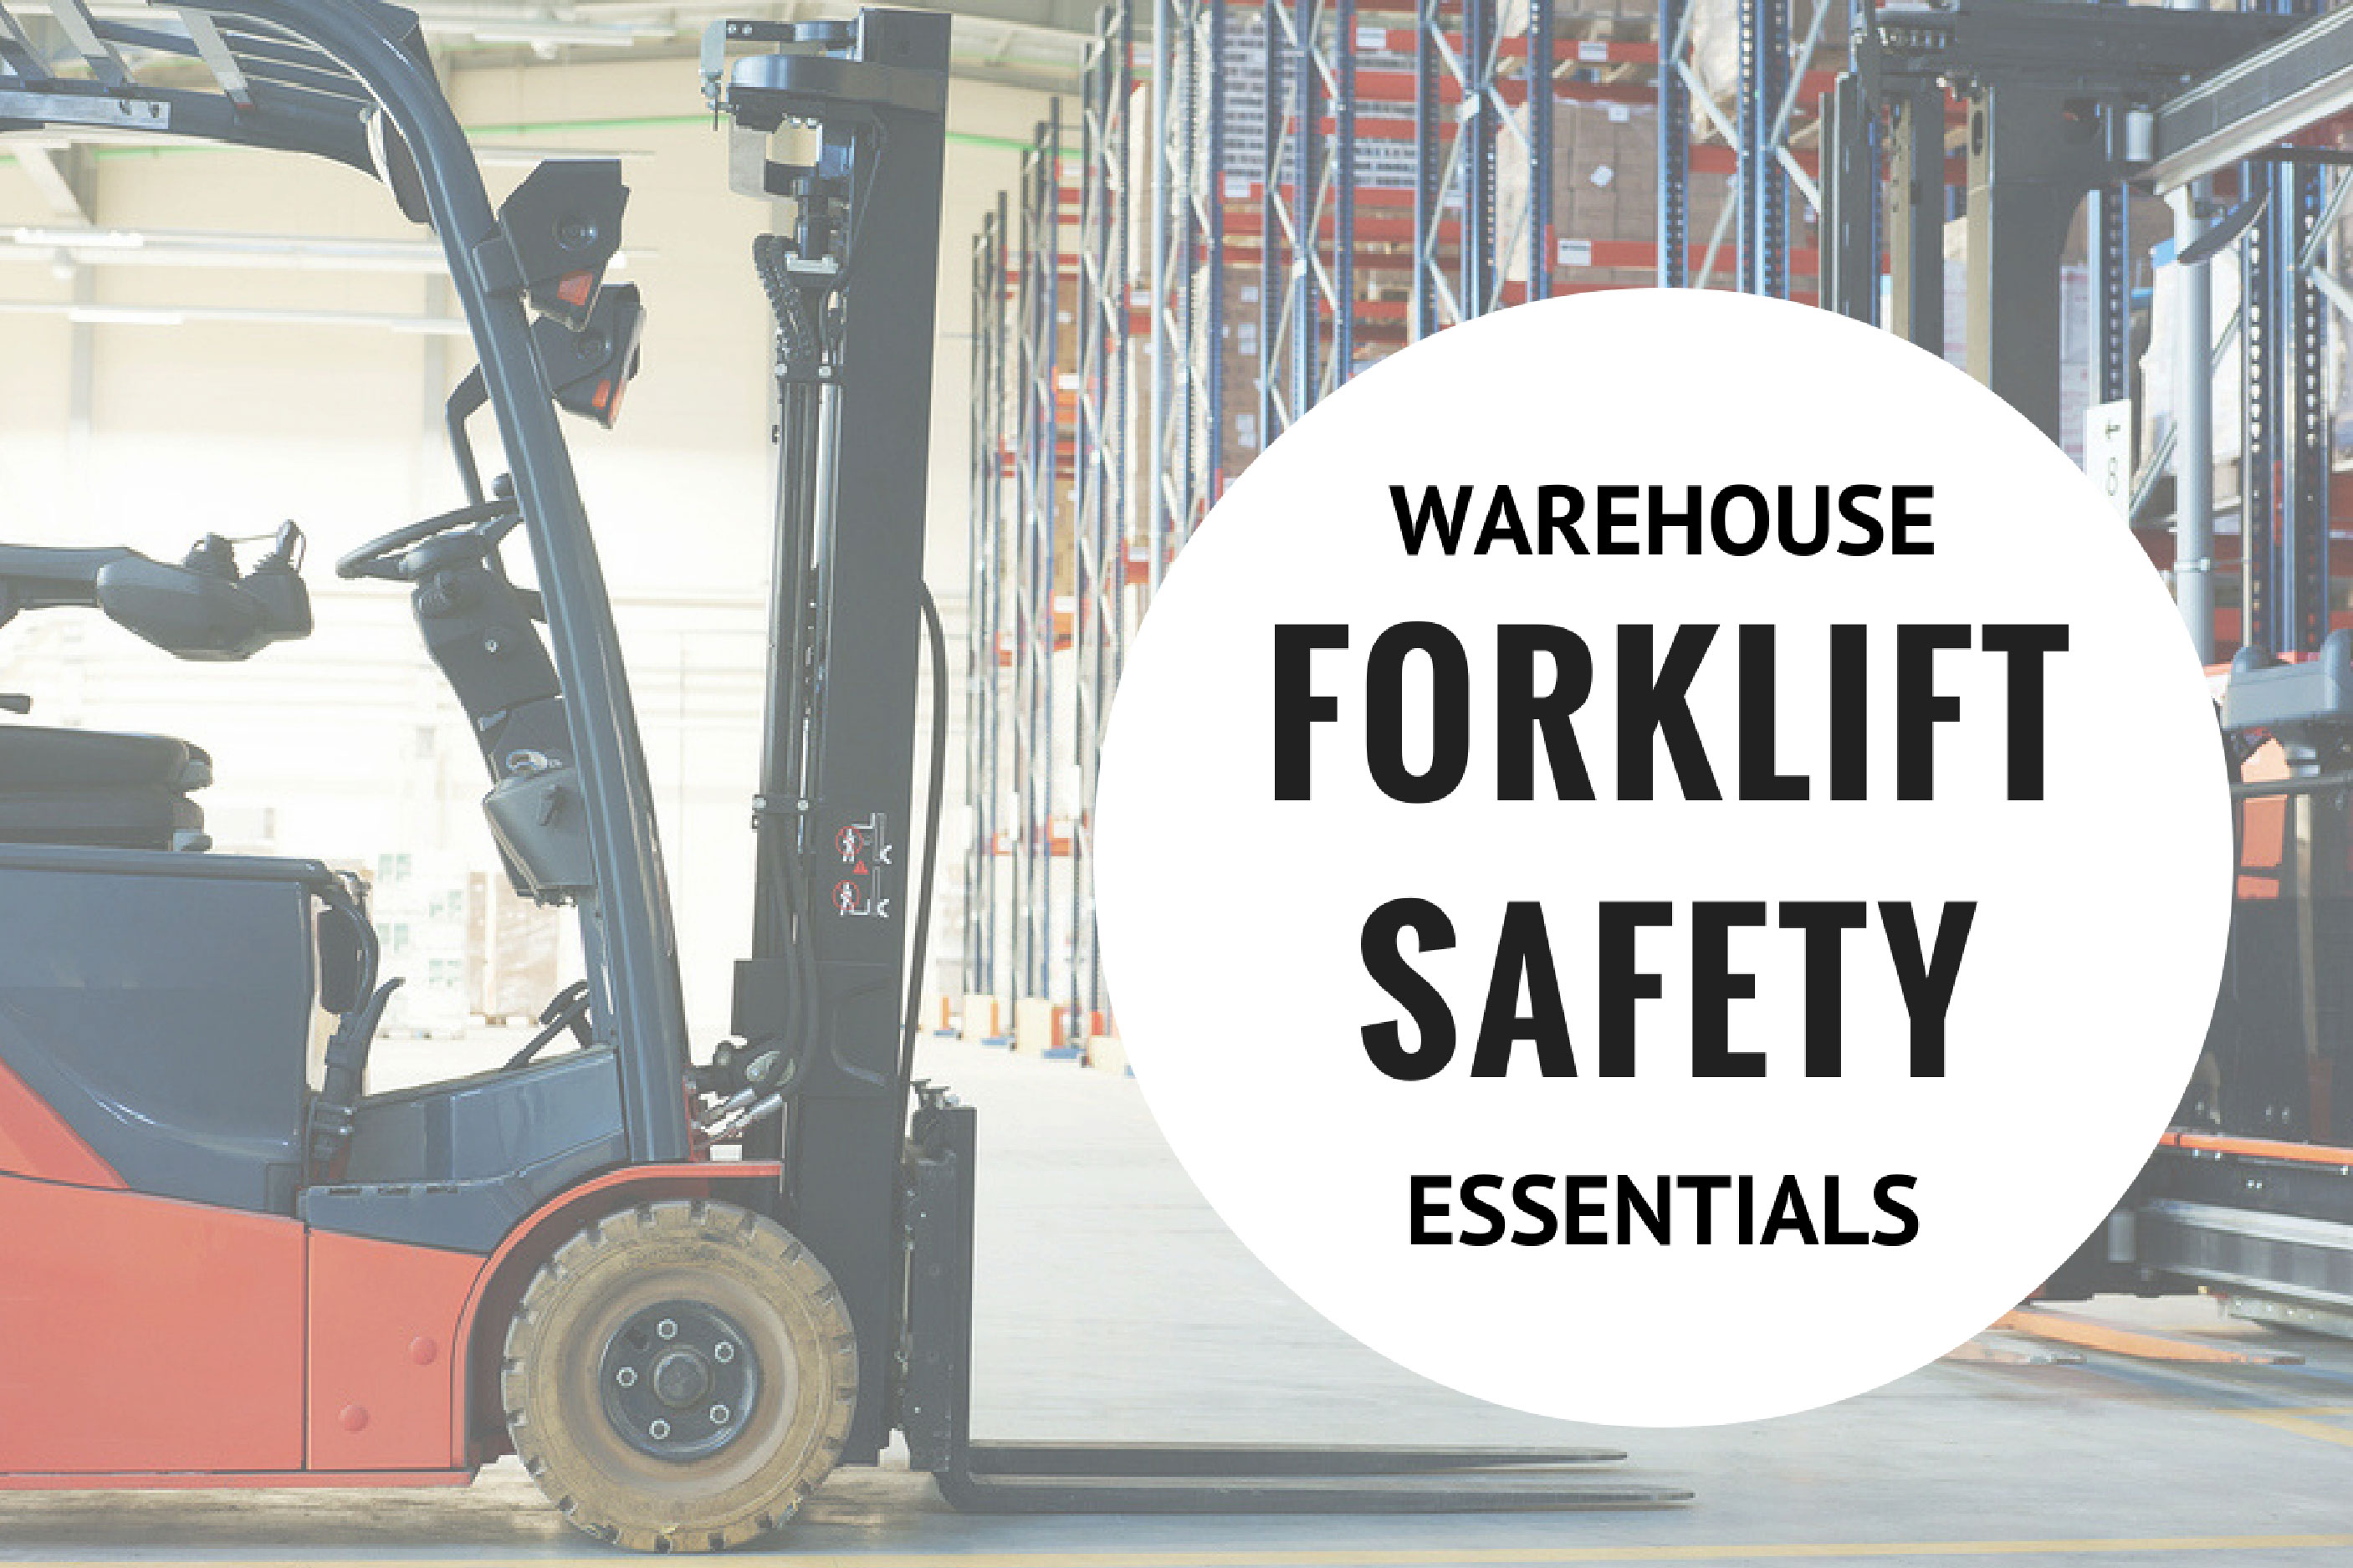 Warehouse Forklift Safety Essentials